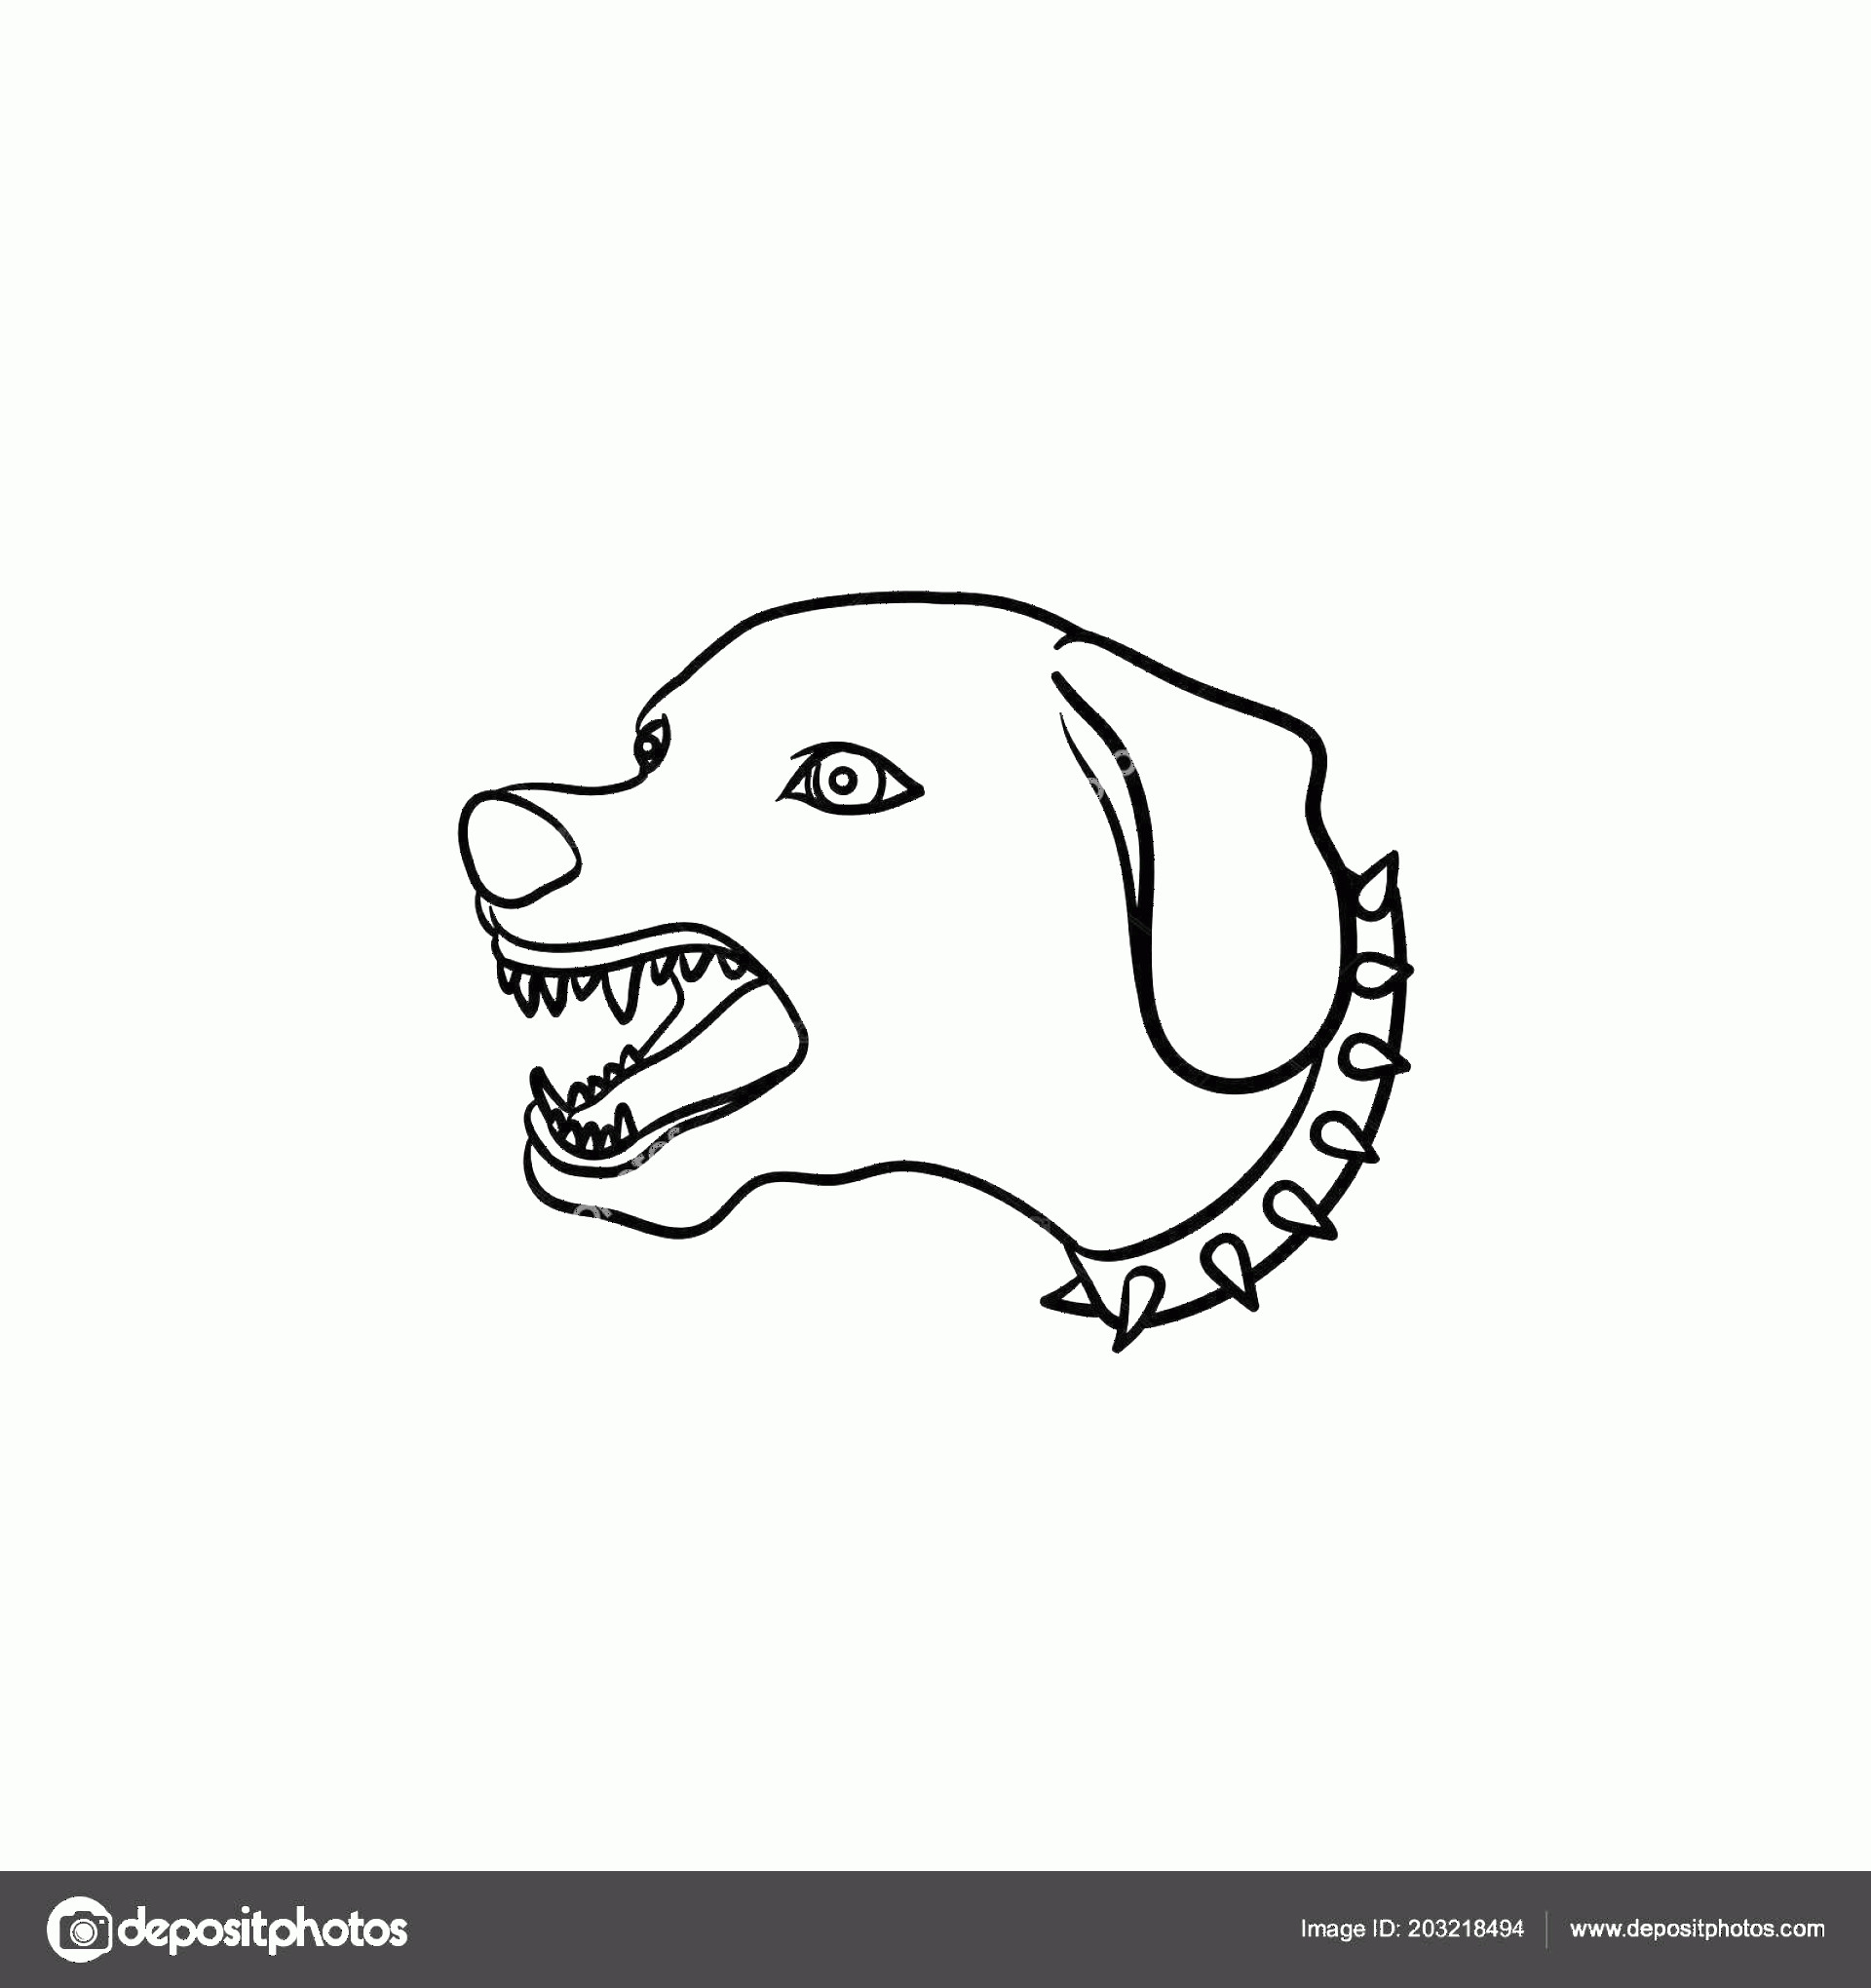 Angry Dog Vector Black And White: Stock Illustration Angry Dog With Teeth Hand